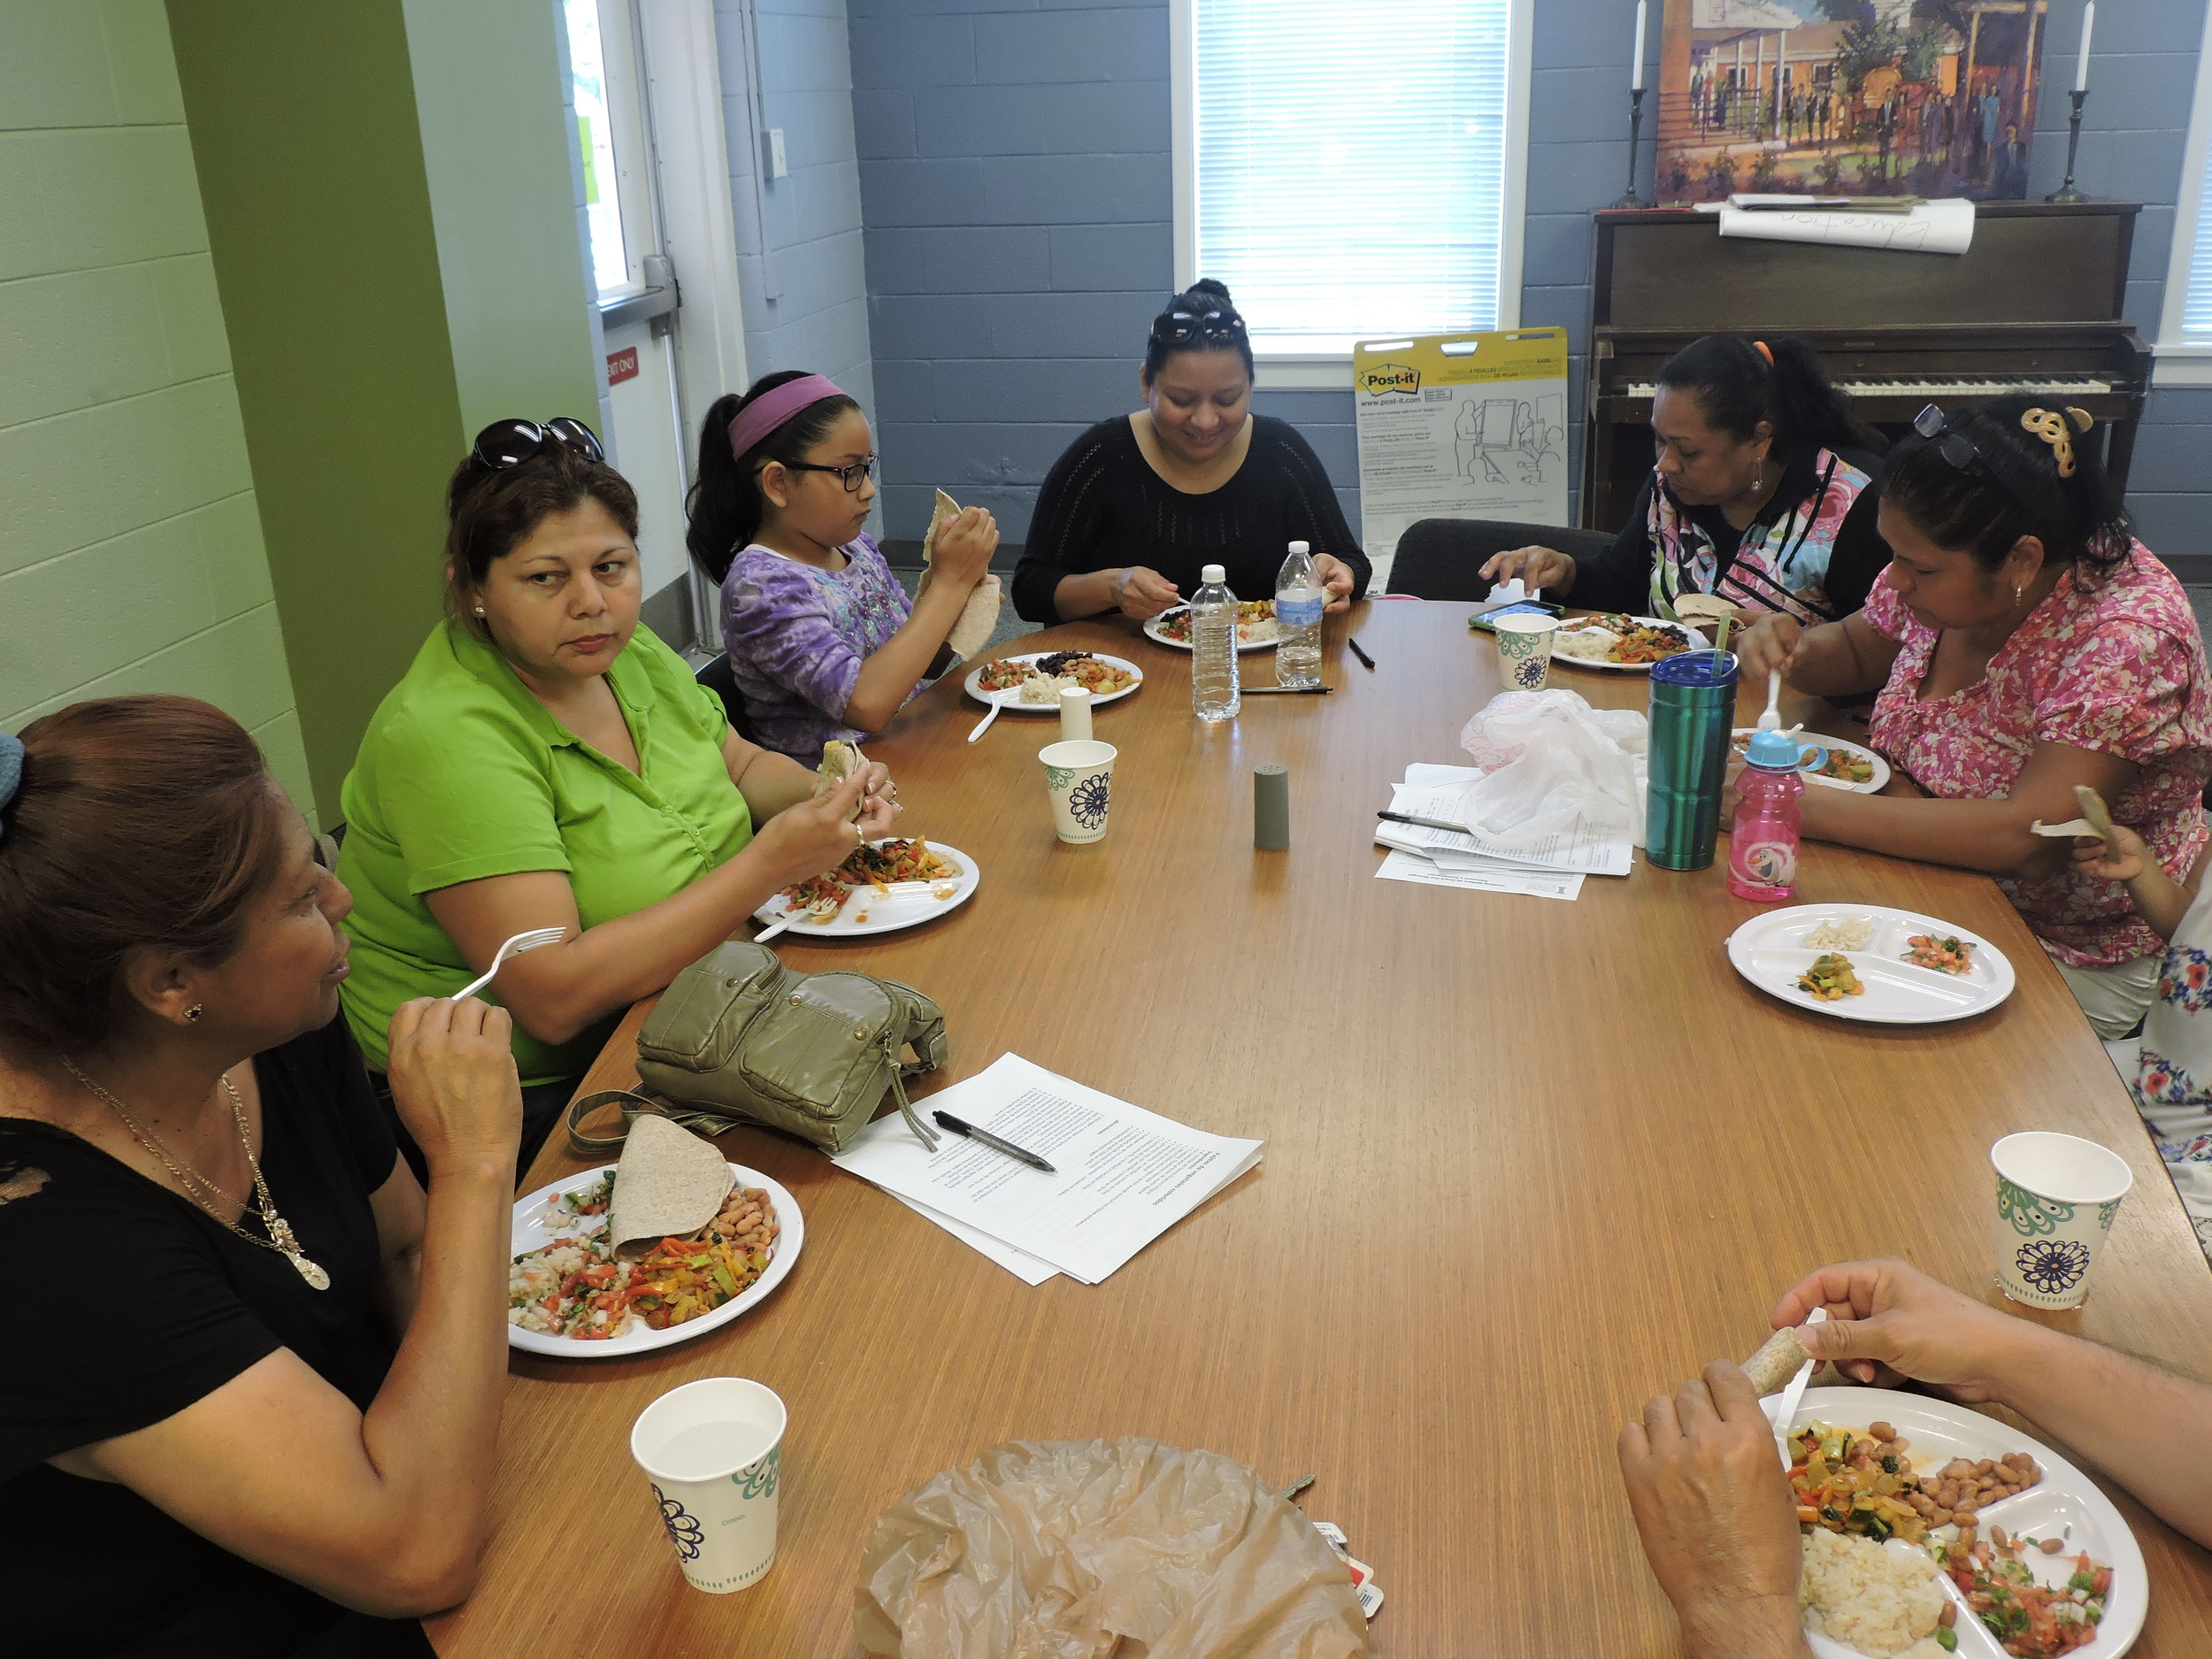 Alliance Medical Ministry patients socialize and enjoy the meal they prepared together.